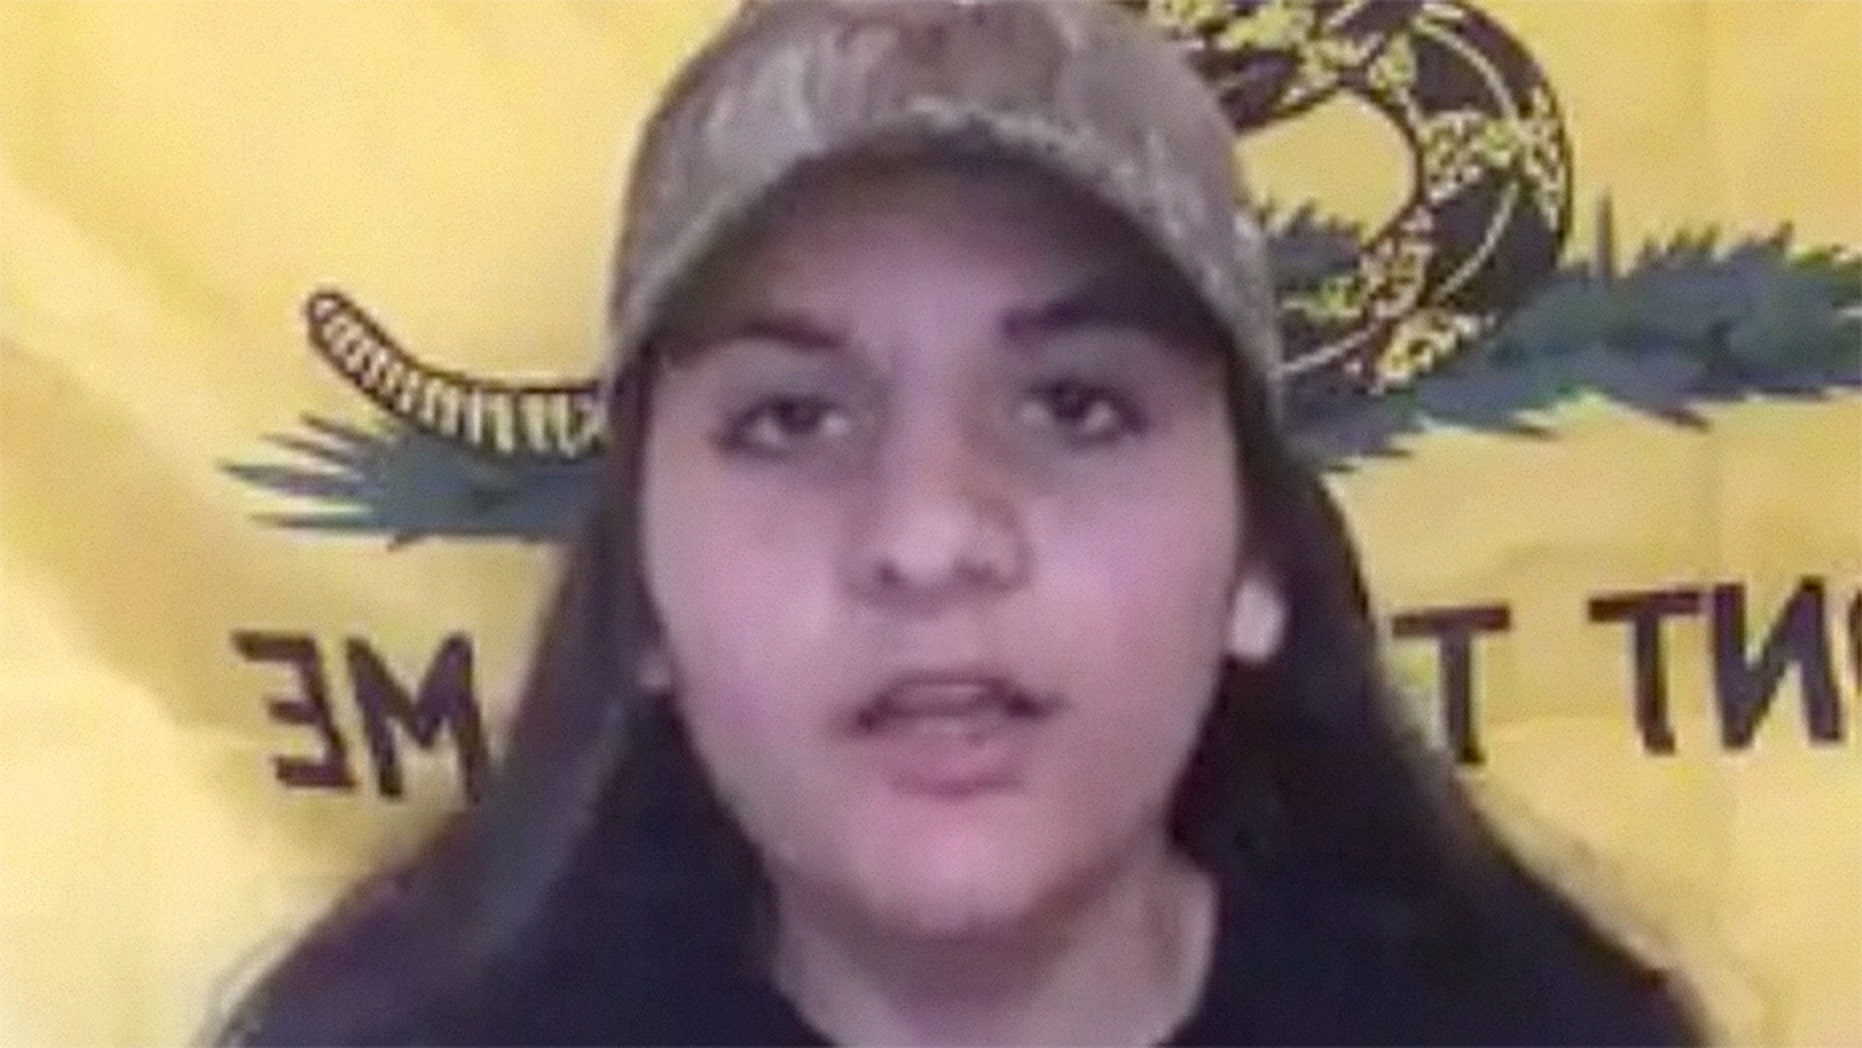 Elizabeth Najjar, 16, claims school officials asked to take down a Facebook video after she spoke up for gun rights.